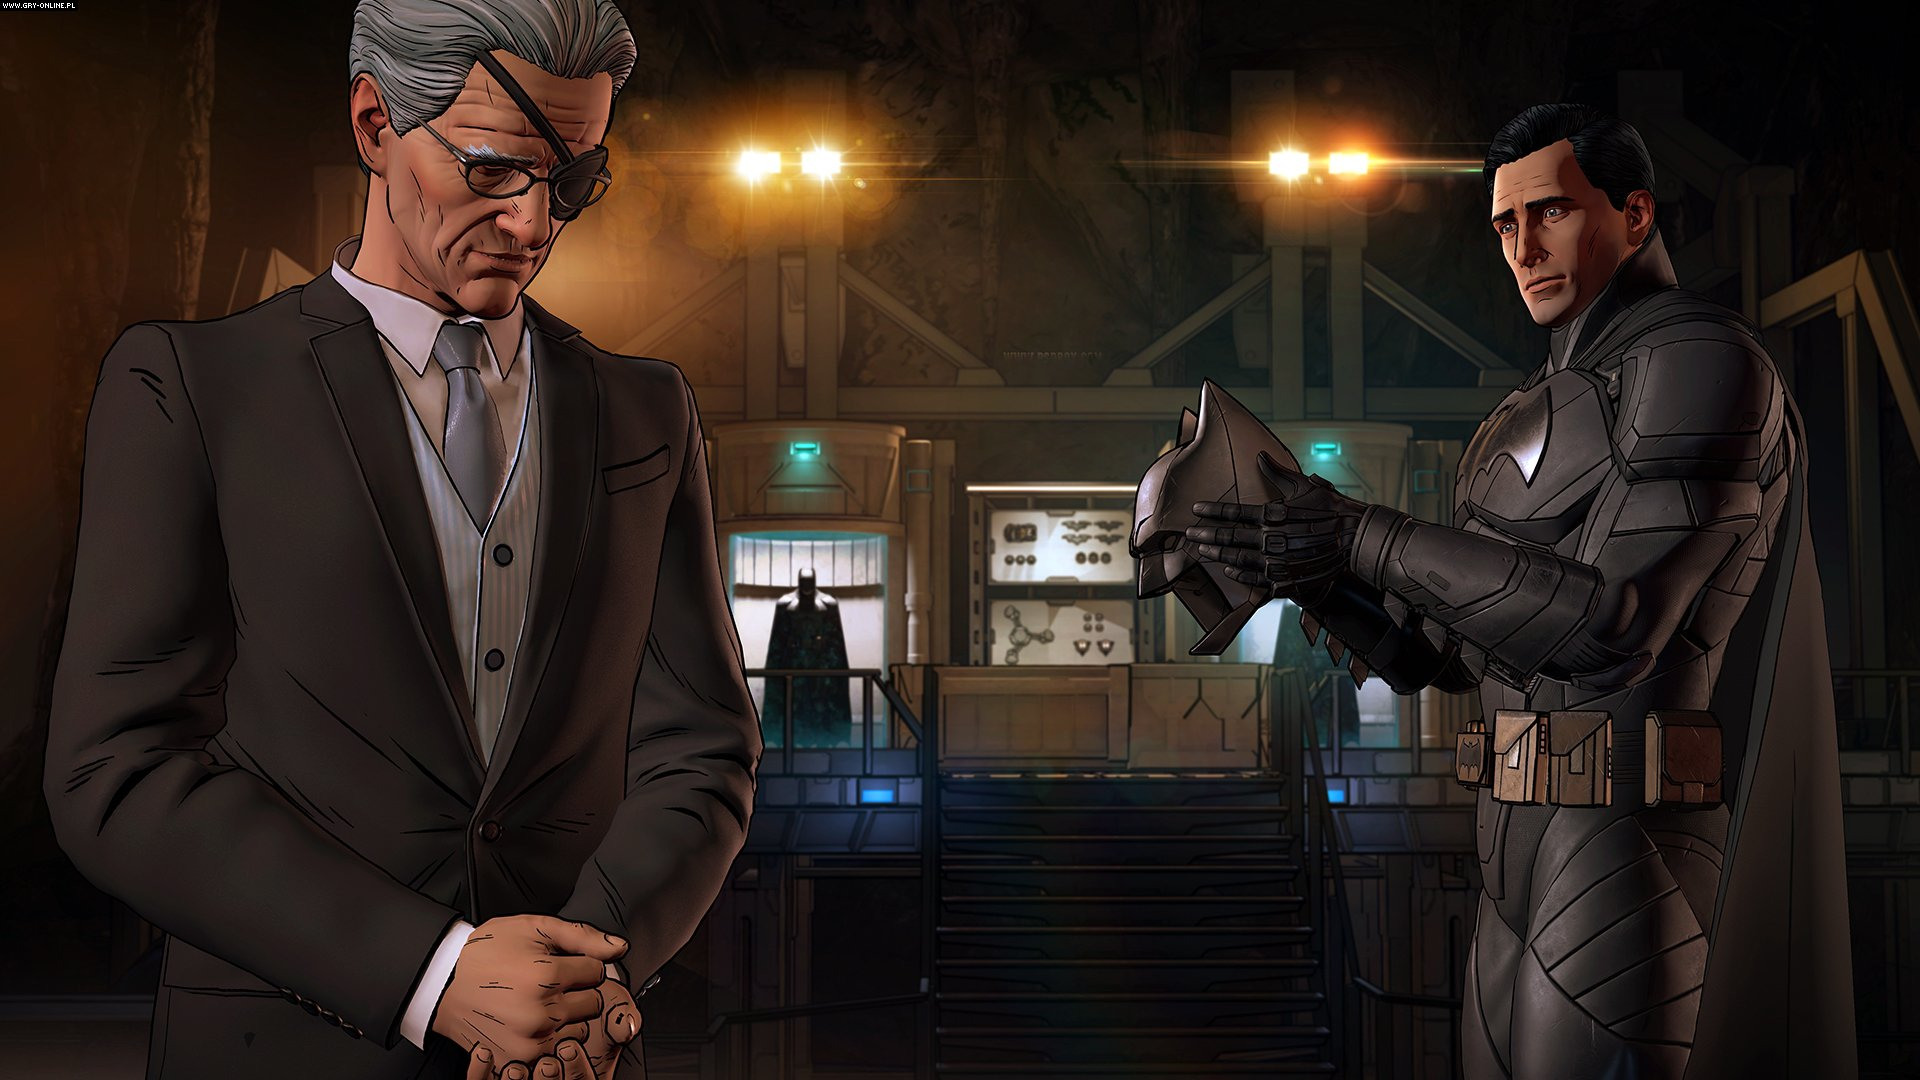 Batman: The Telltale Series - The Enemy Within PC, PS4, XONE, AND, iOS Games Image 4/10, Telltale Games